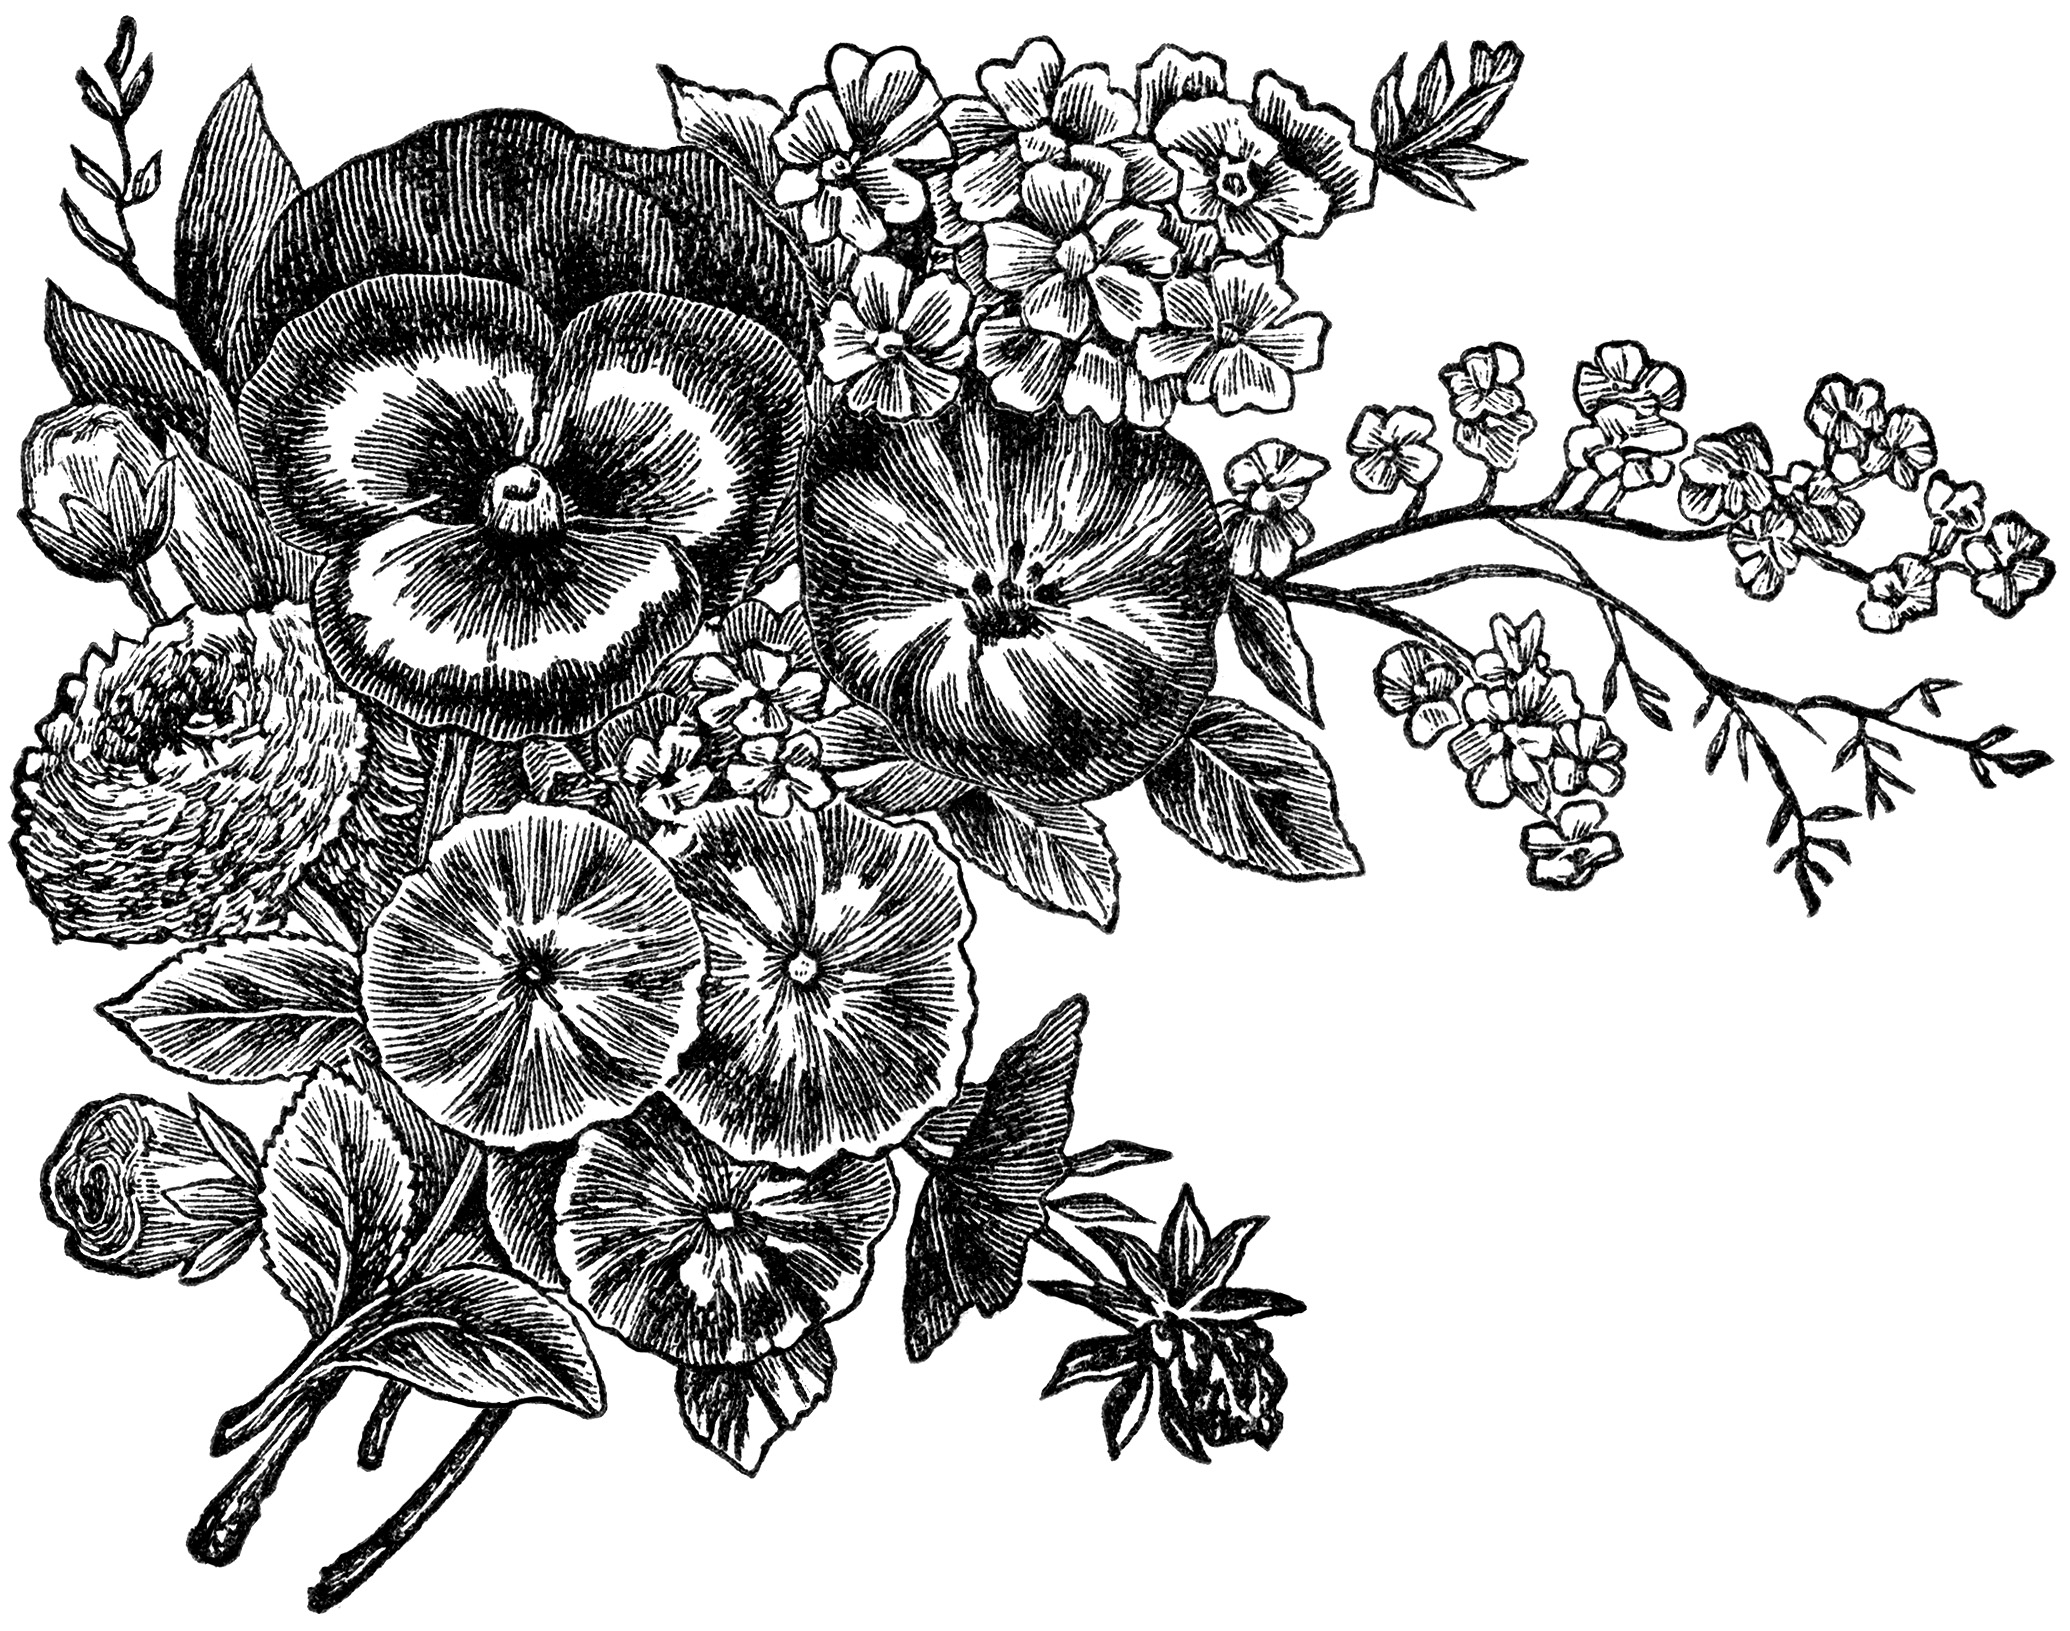 Black And White Flowers Borders Clipart - Clipart Kid